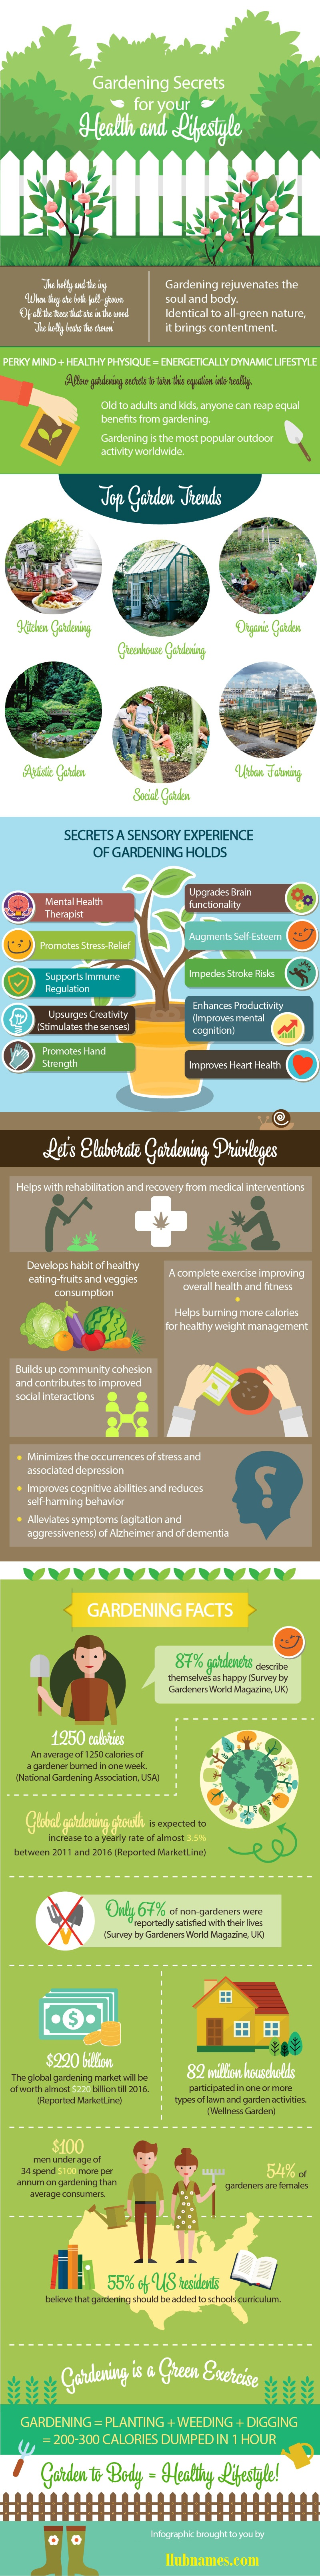 Gardening Secret For Your Health And Lifestyle Infographic